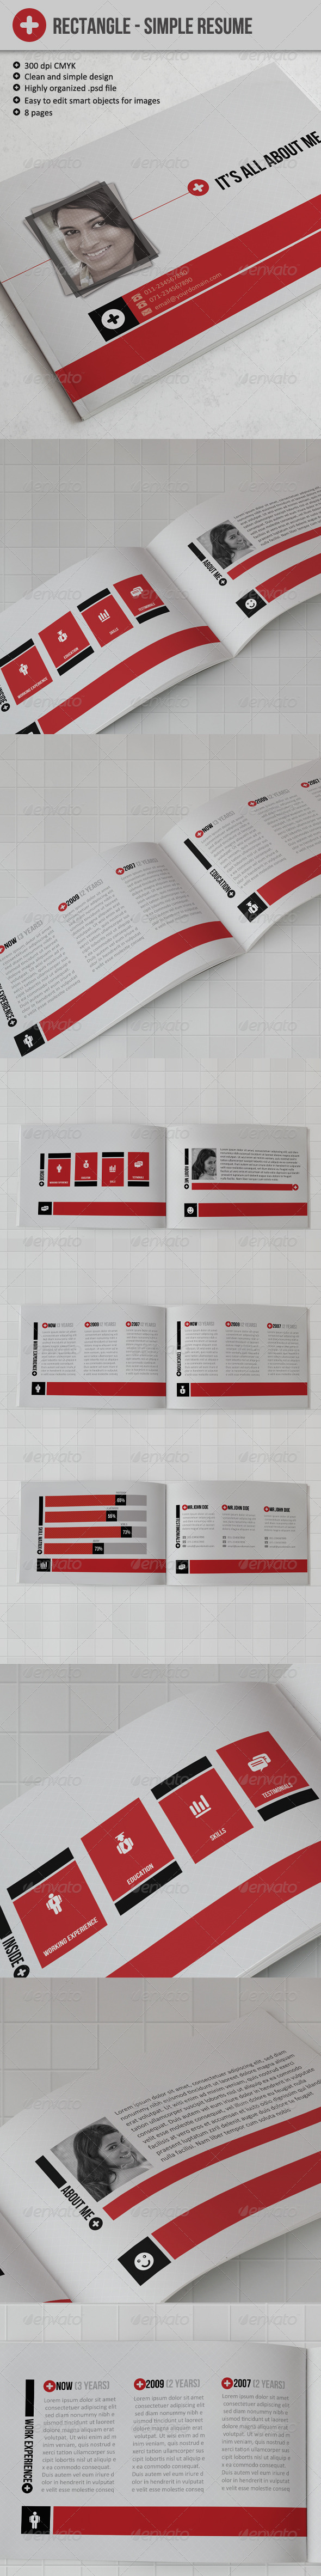 Rectangle - Simple Resume - Resumes Stationery